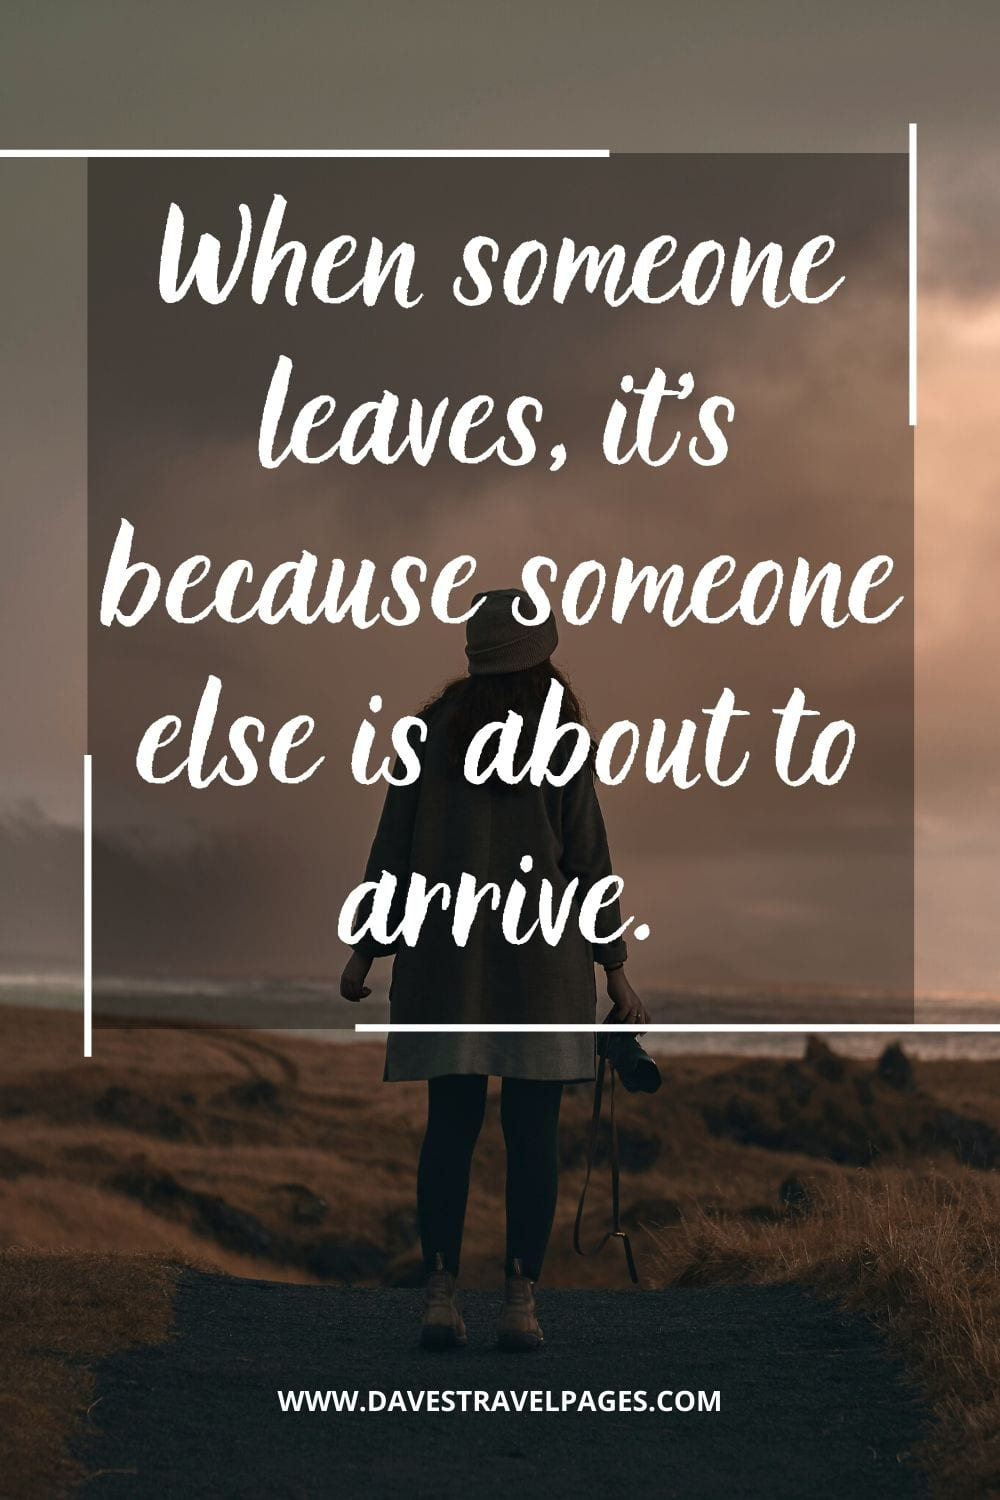 """When someone leaves, it's because someone else is about to arrive."" – Saying by Paulo Coelho"